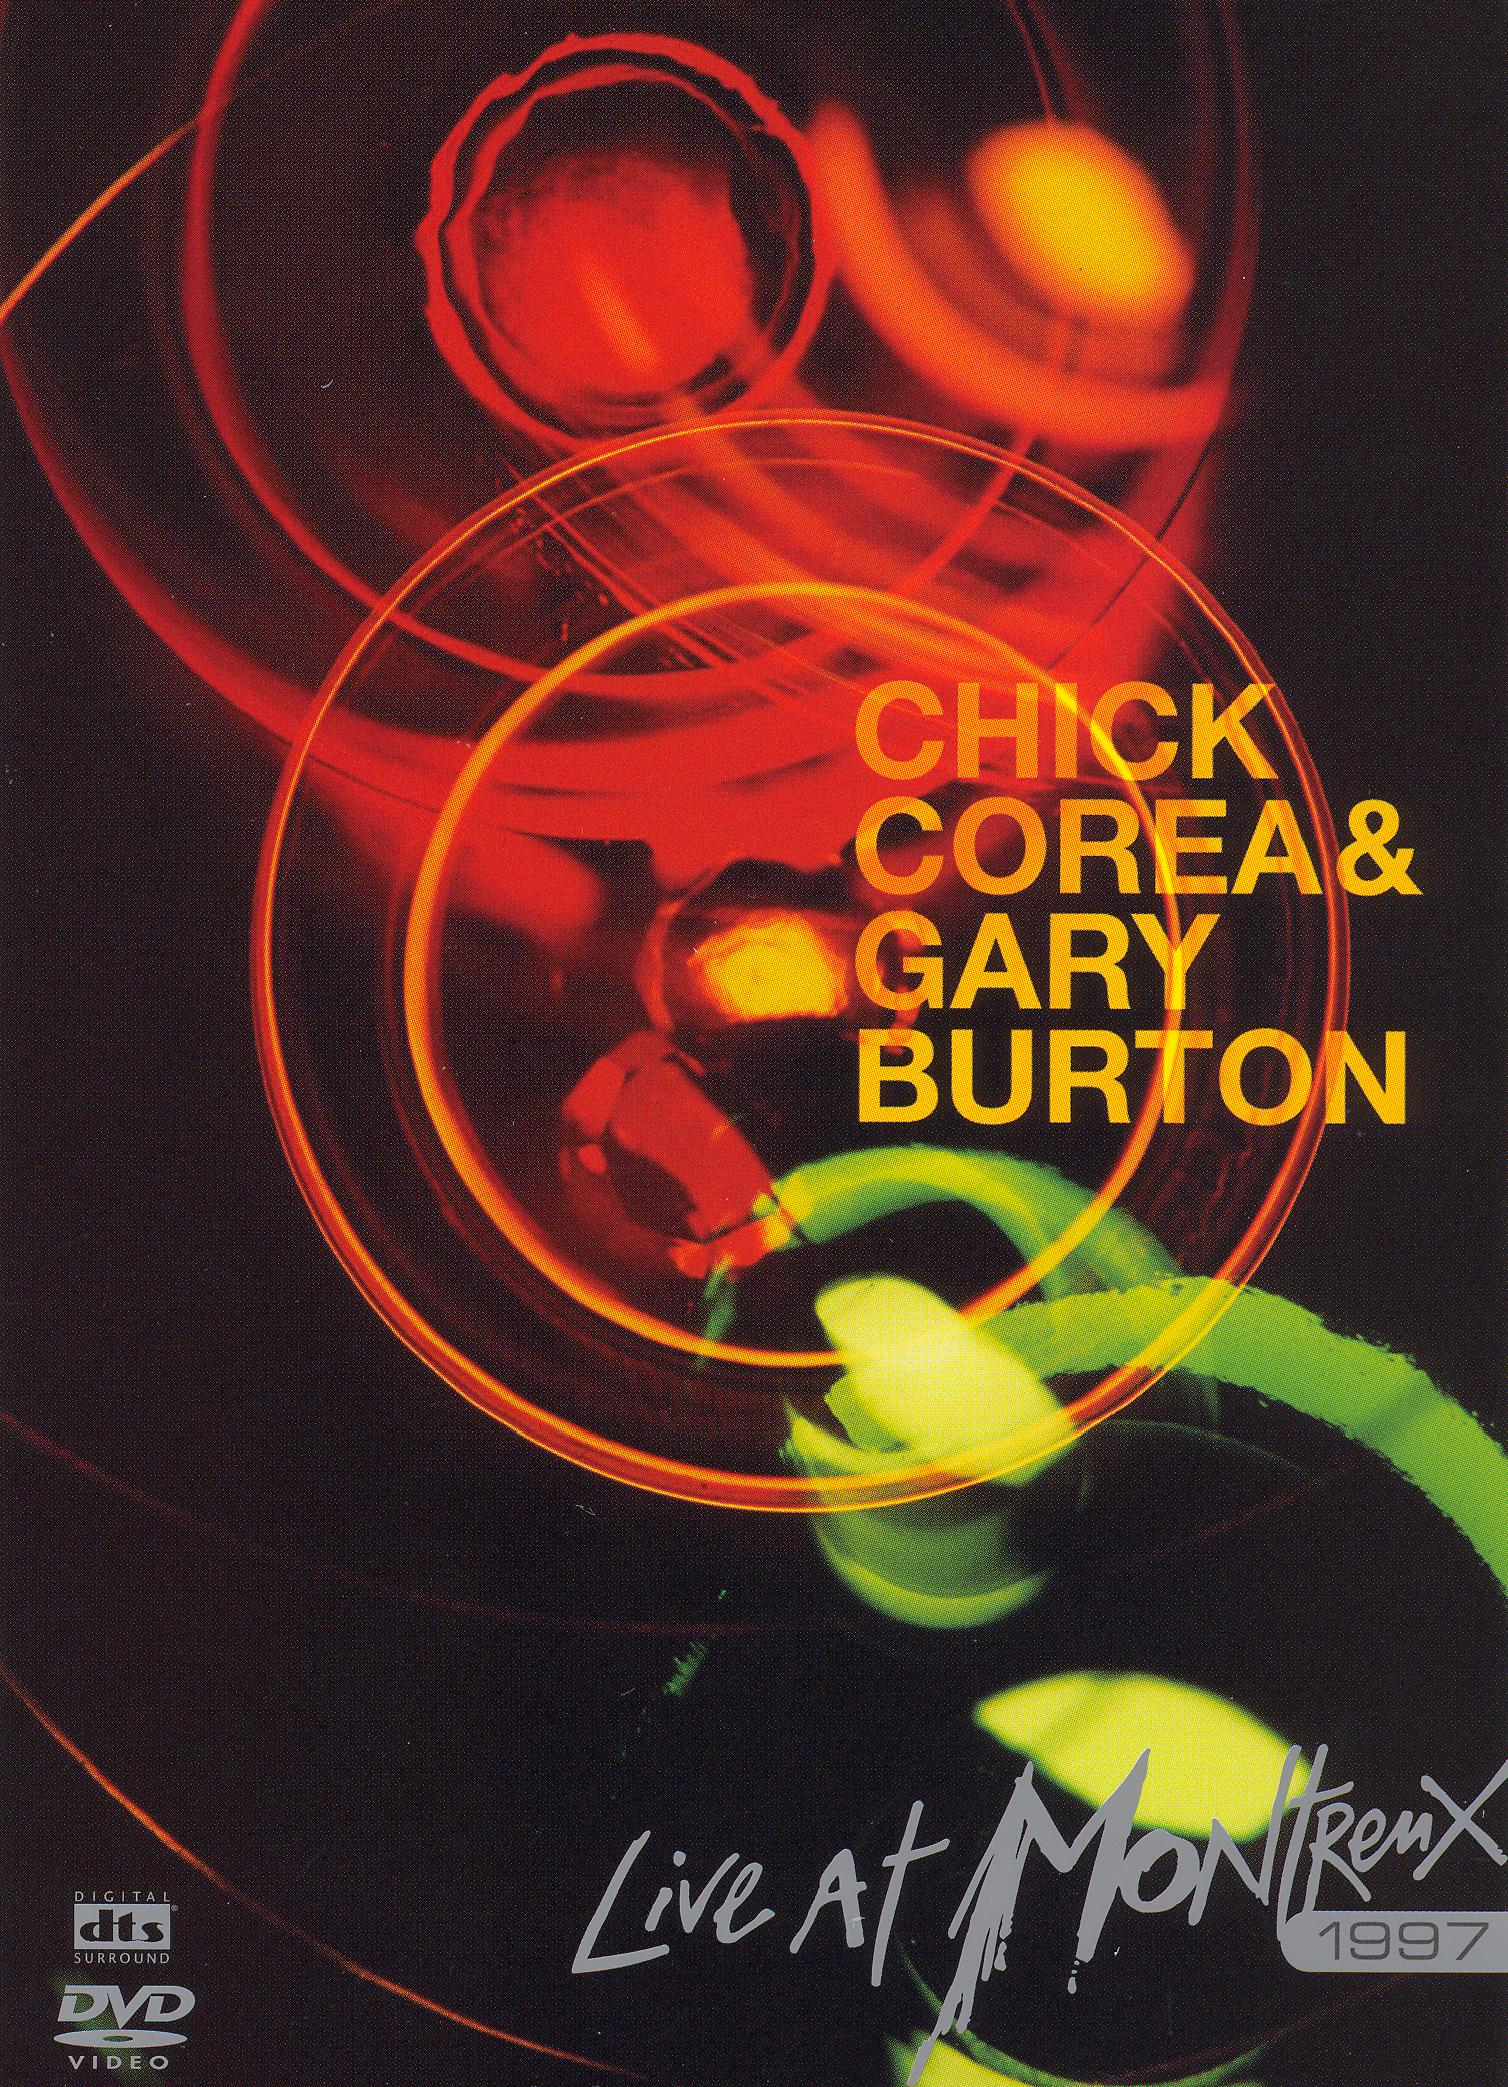 Chick Corea and Gary Burton: Live at Montreux 1997